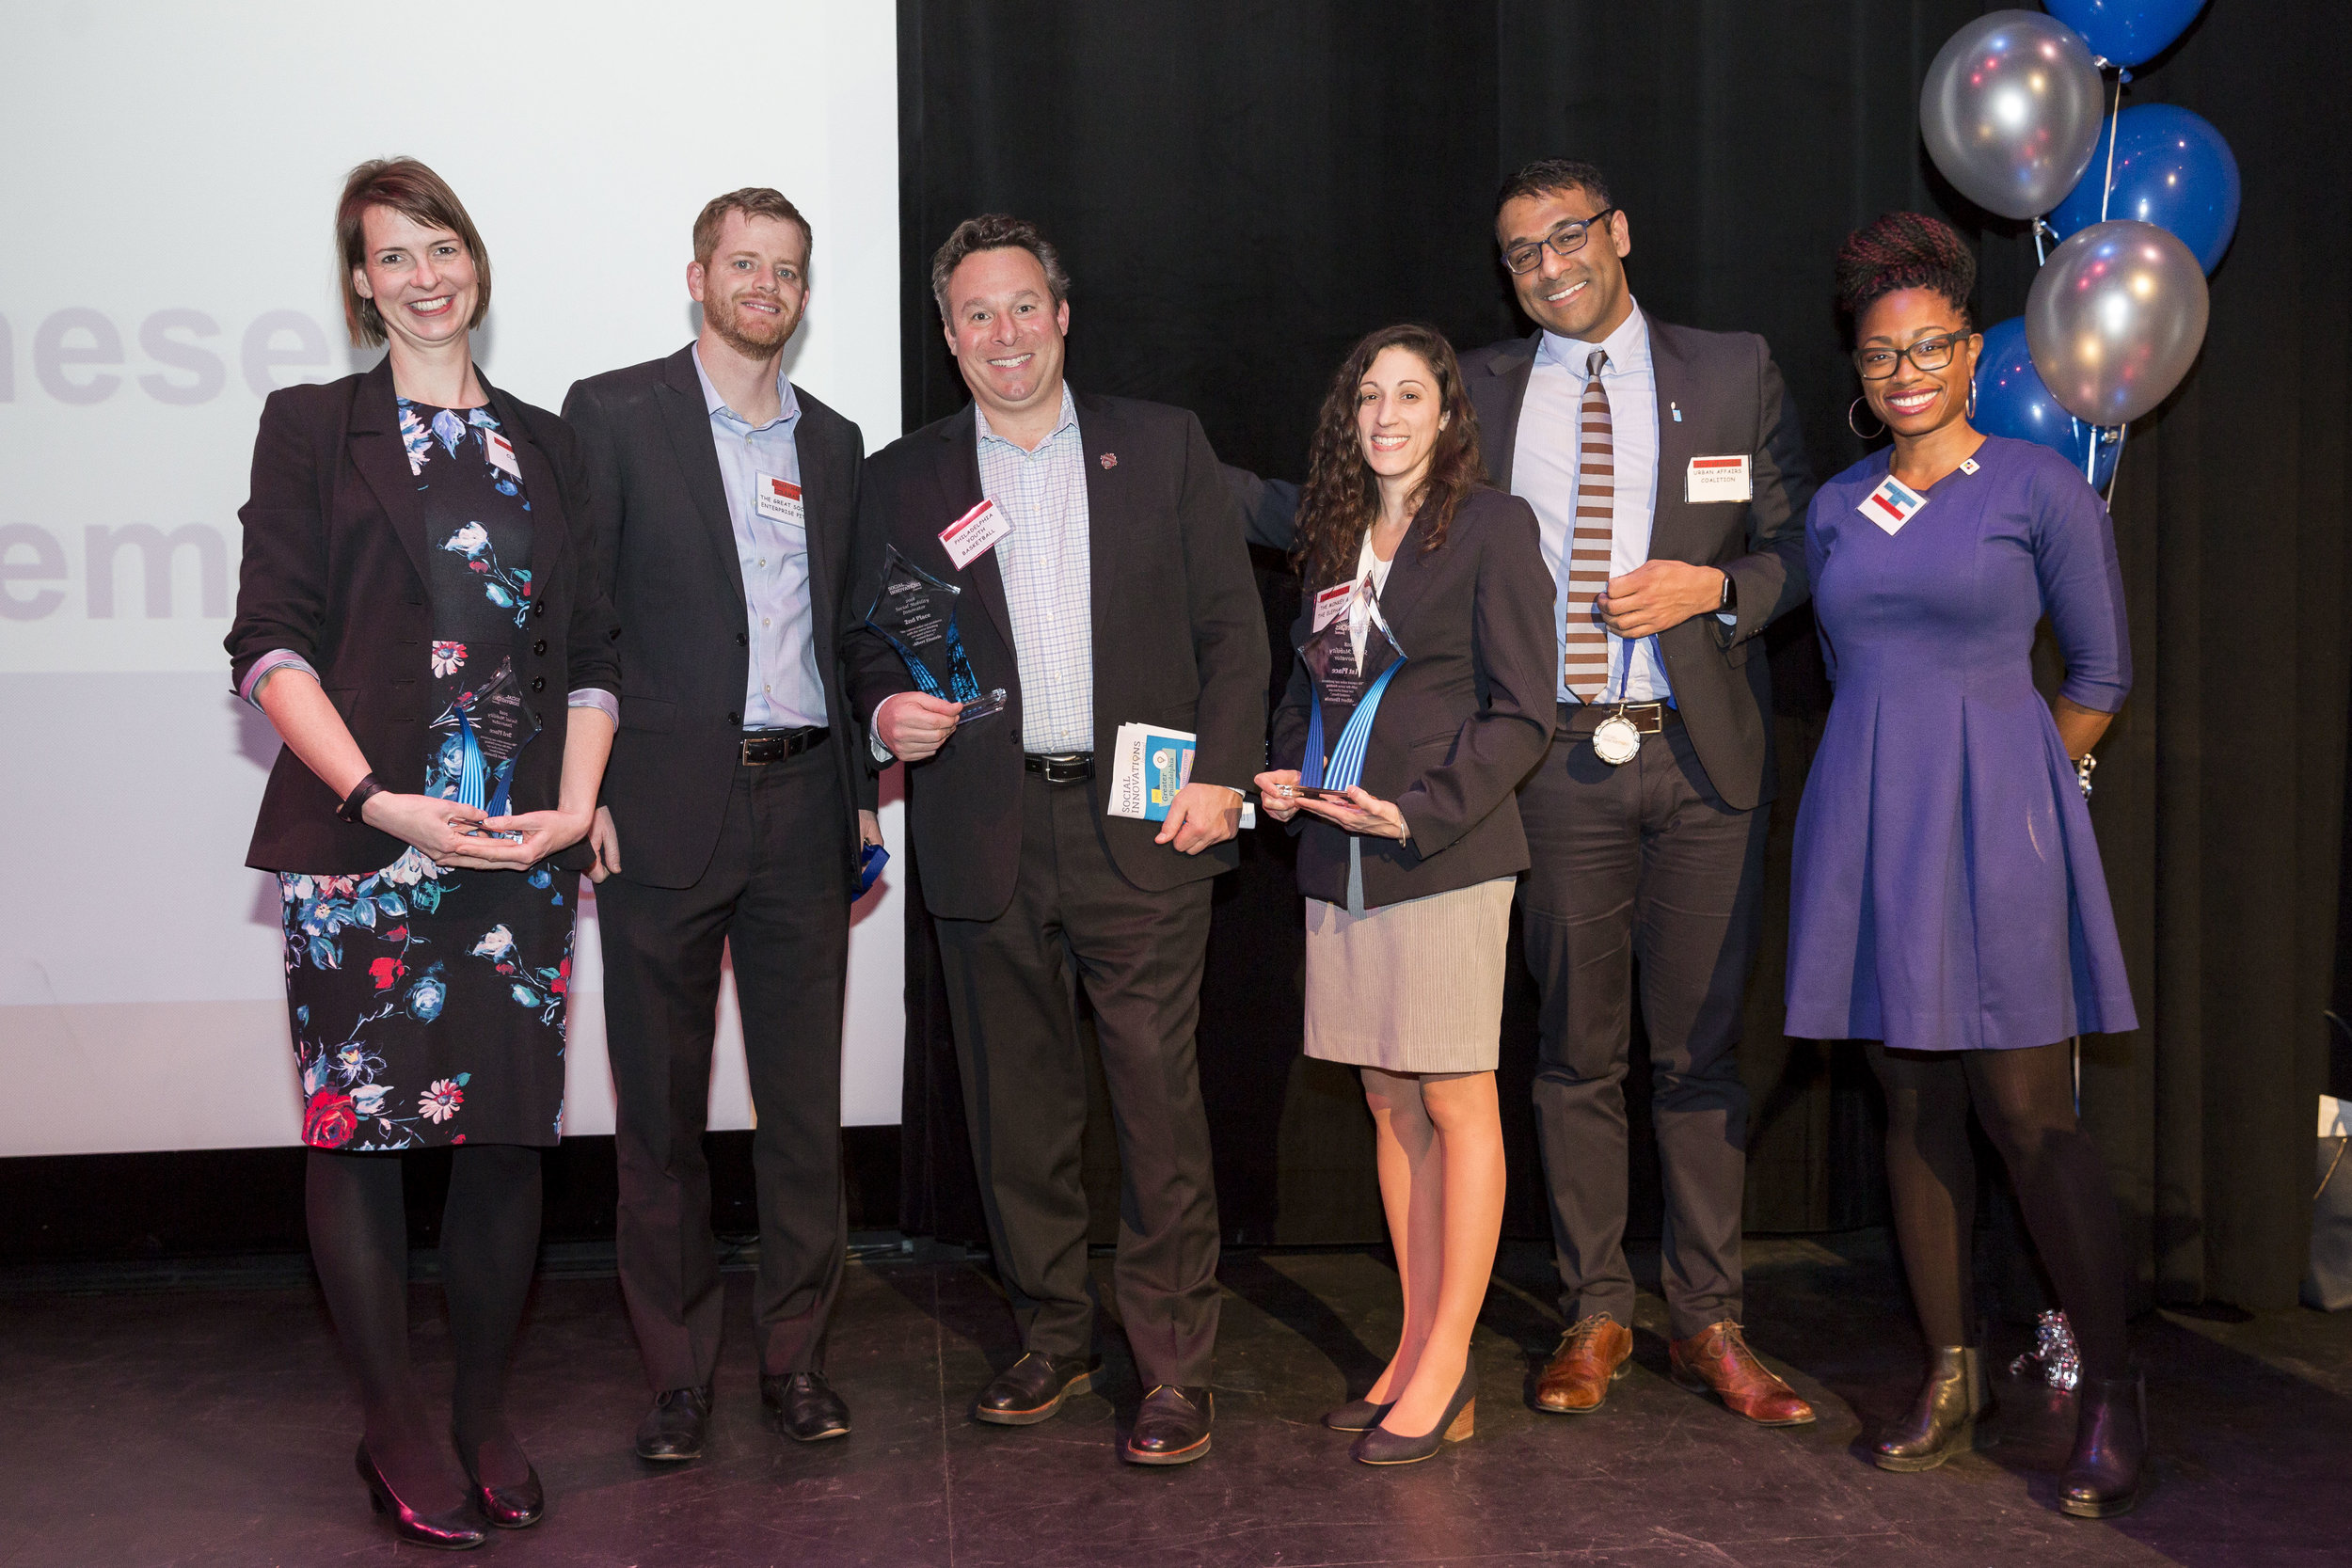 - SOCIAL MOBILITY1st: LISA MICCOLIS, THE MONKEY & THE ELEPHANT2nd: KENNY HOLDSMAN, PHILADELPHIA YOUTH BASKETBALL3rd: MEGAN KIESEL, CLARIFI4th & 5th: JOJY VARGHESE, URBAN AFFAIRS COALITION & JONATHAN COLEMAN,THE GREAT SOCIAL ENTERPRISE PITCH